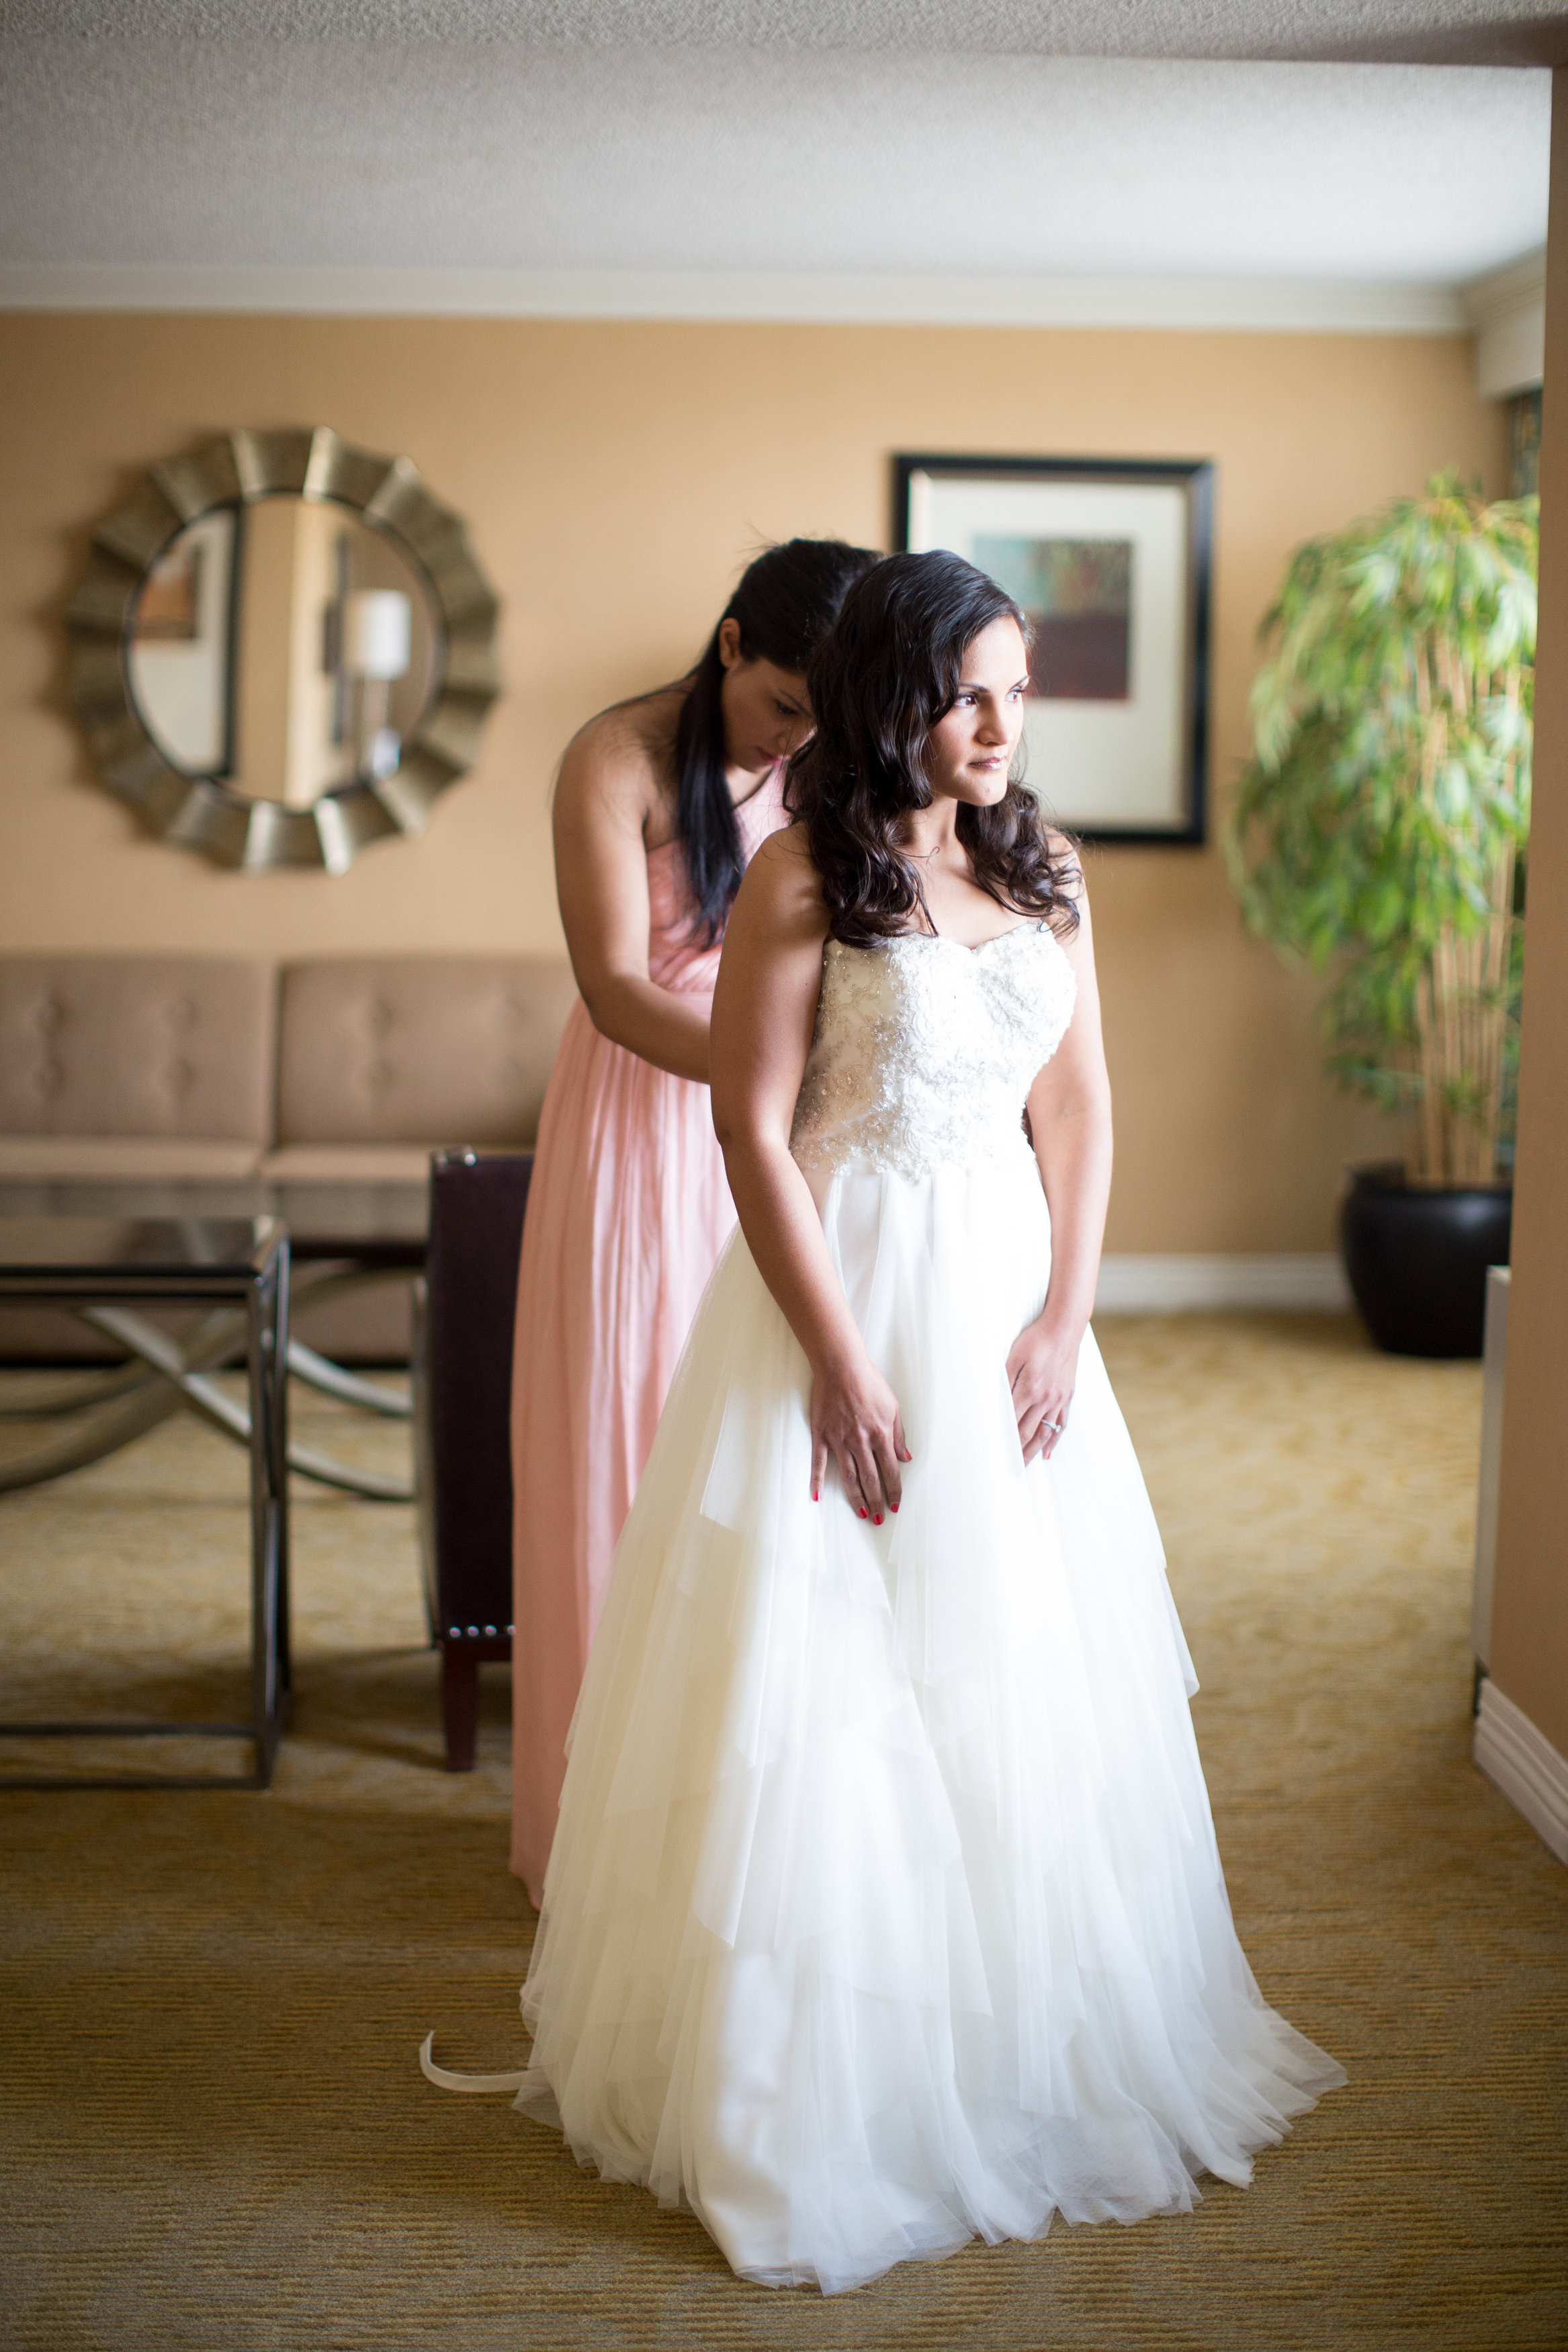 View More: http://abbygracephotography.pass.us/sherman-wedding